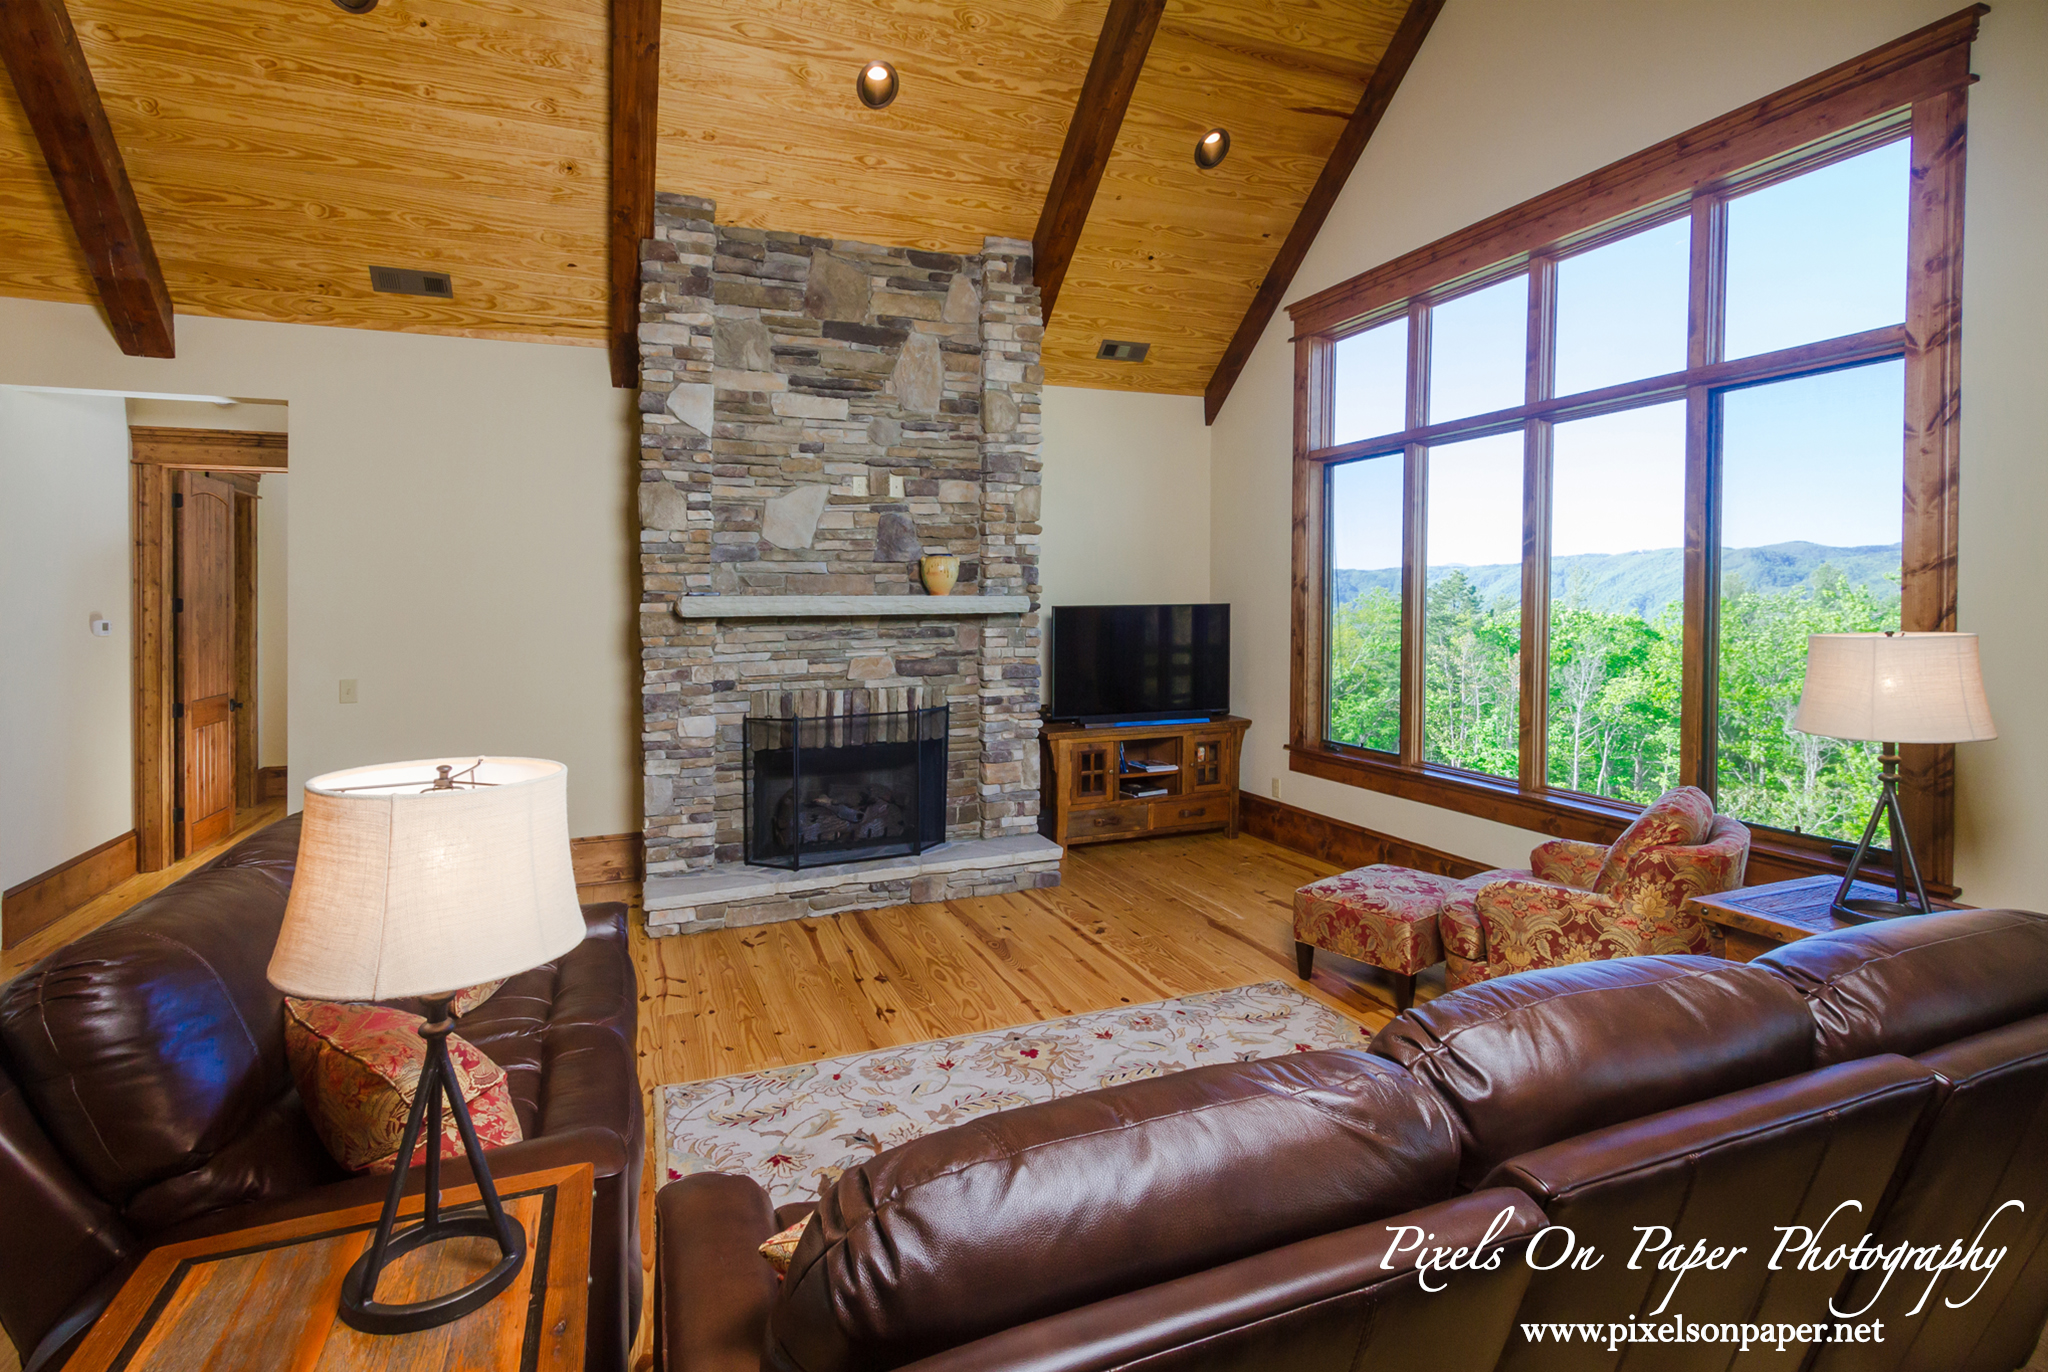 MBI Builders custom home blue ridge mountain club architectural photography pixels on paper commercial photographers photo